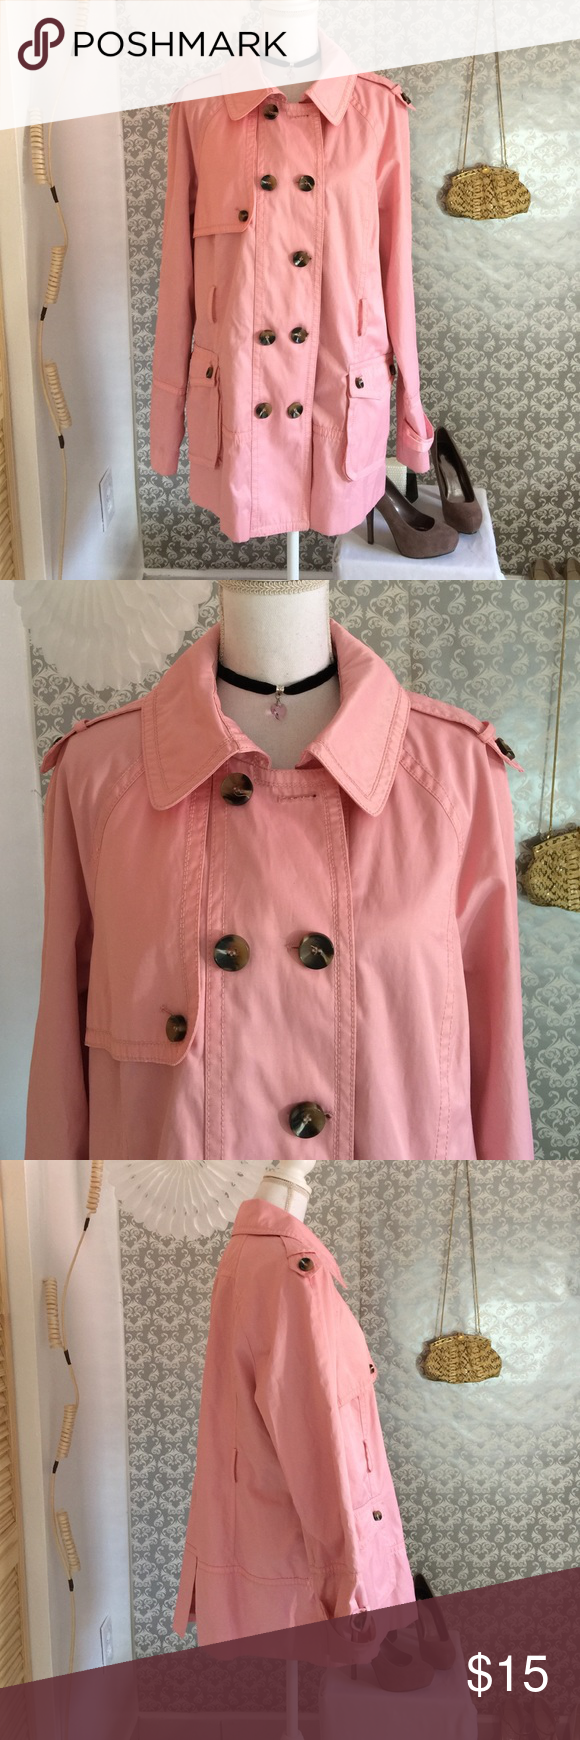 Jones New York pink weather proof jacket Lightly worn missing wrap around belt and in button at collar otherwise perfect condition 23 inches in length sleeves 27 inches in length Jones New York Jackets & Coats